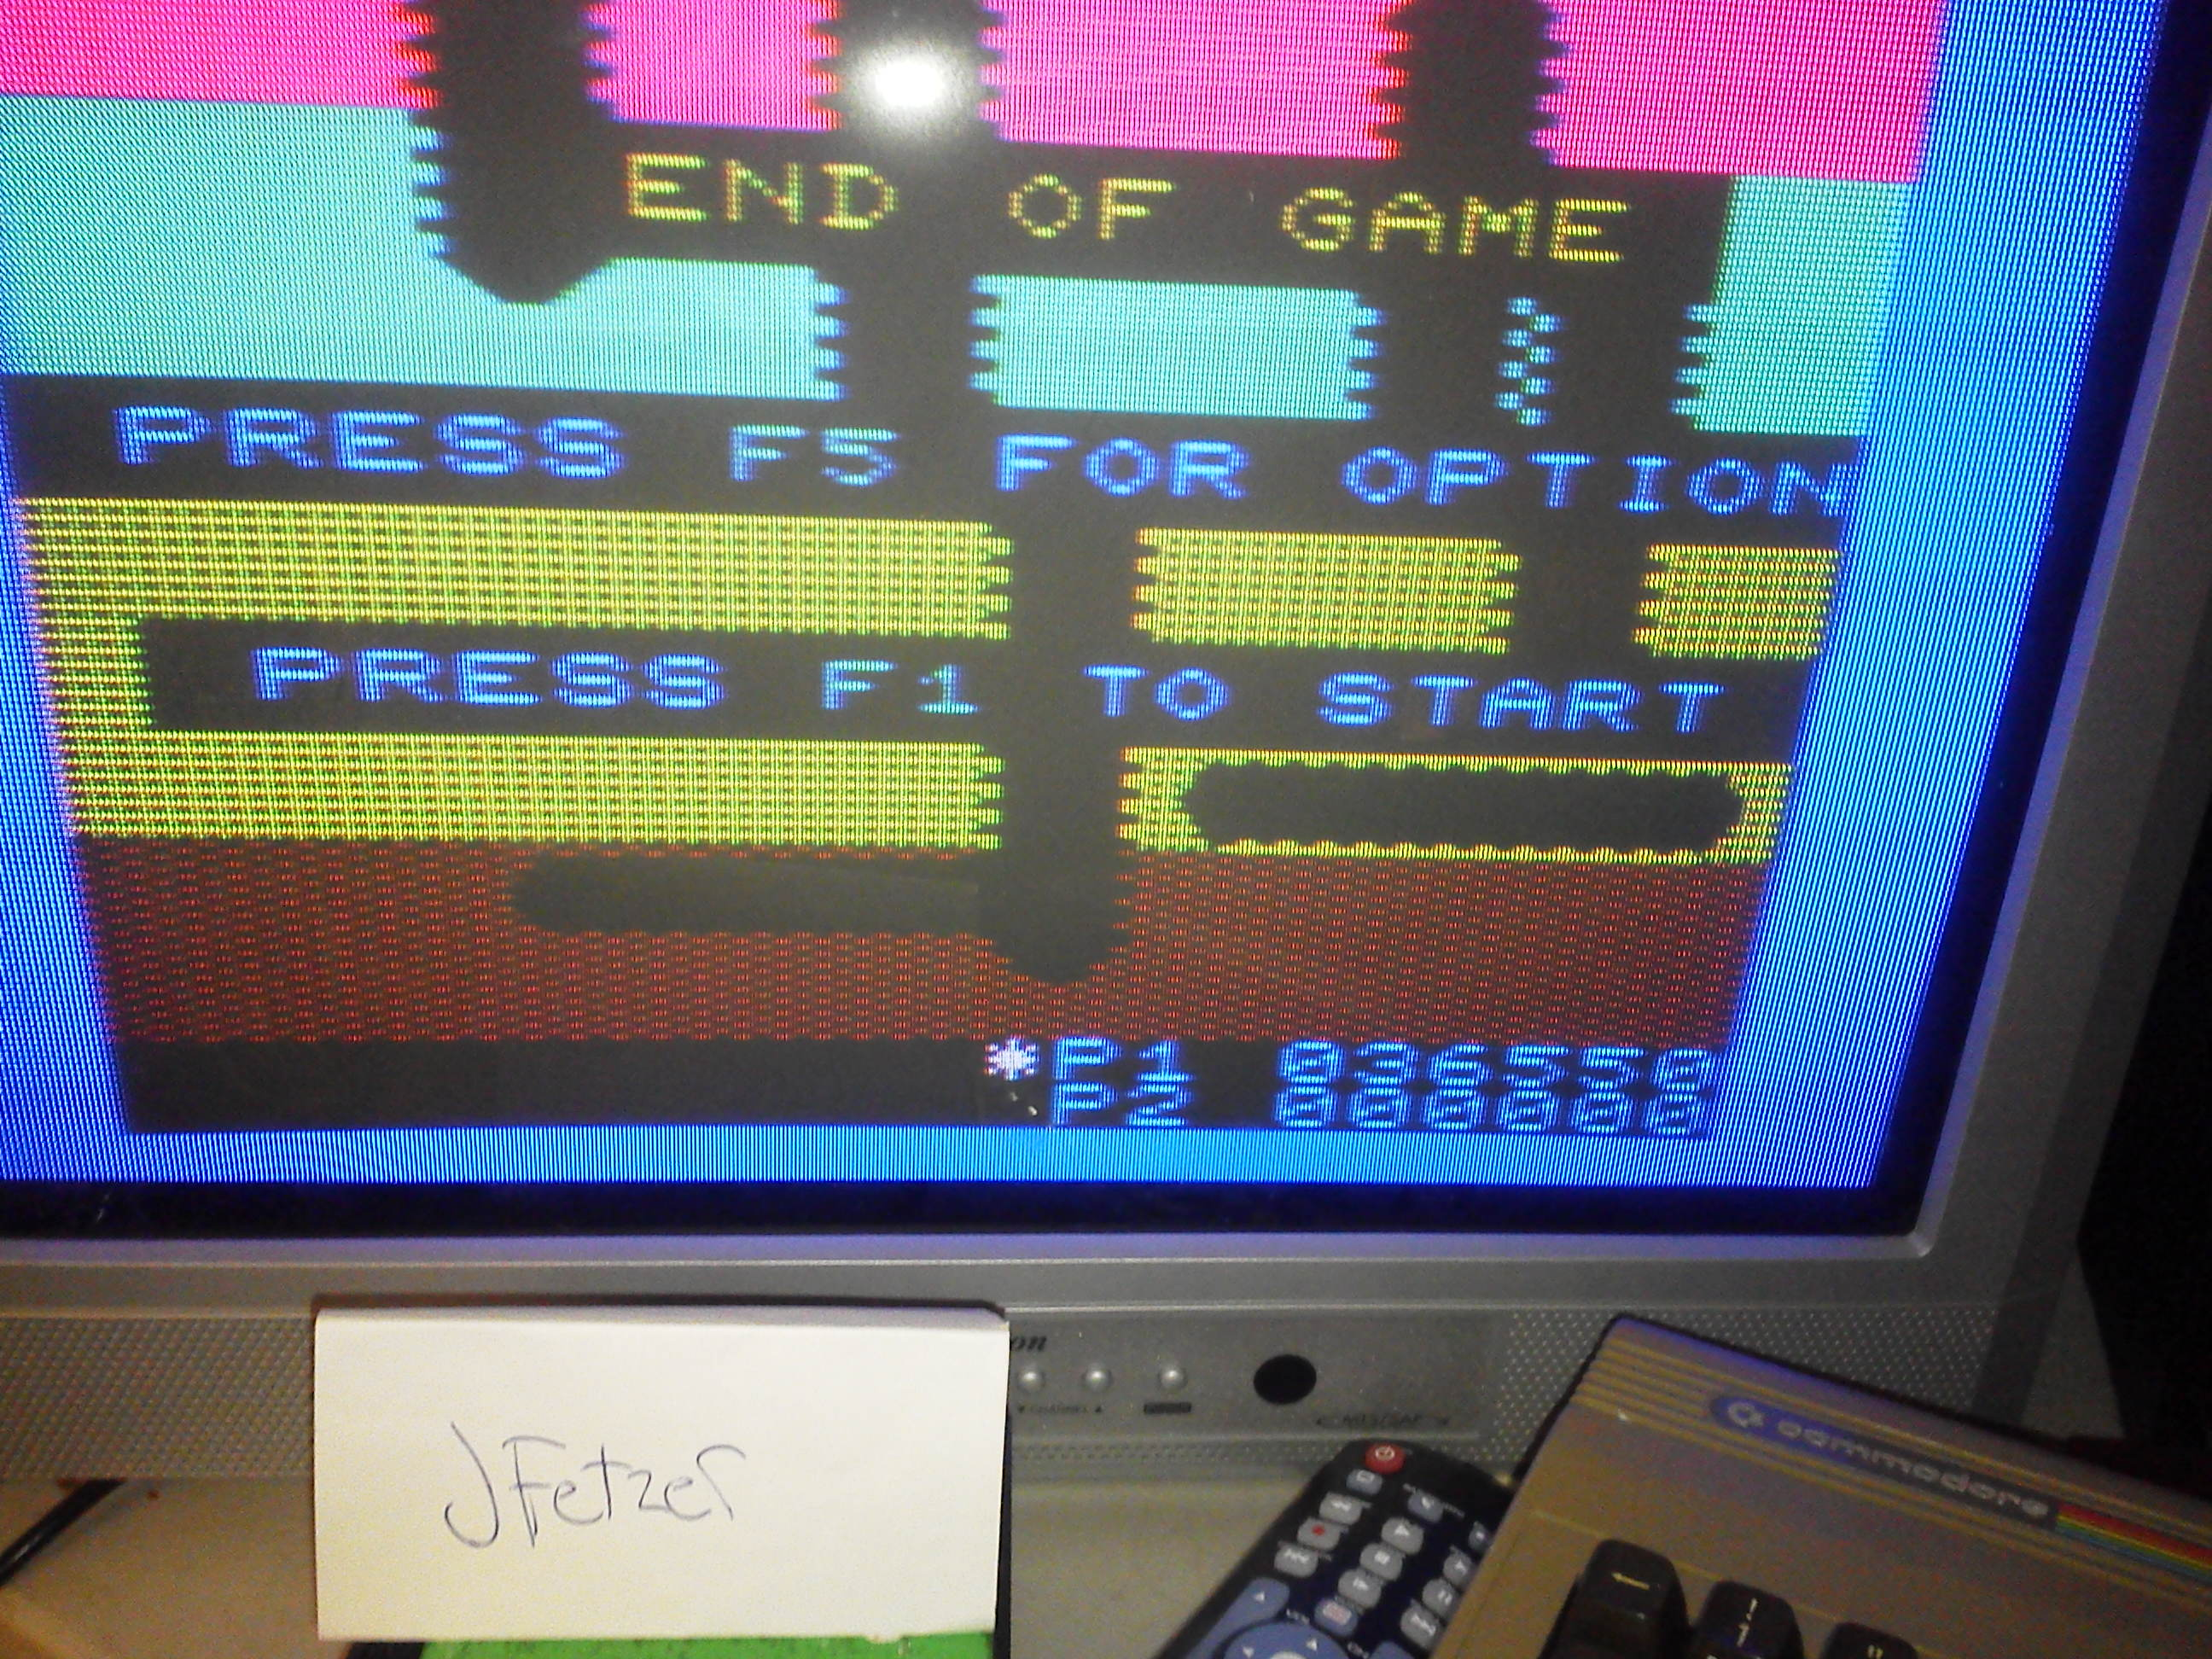 jfetzer: Dig Dug (Commodore VIC-20) 36,550 points on 2014-03-29 22:25:19